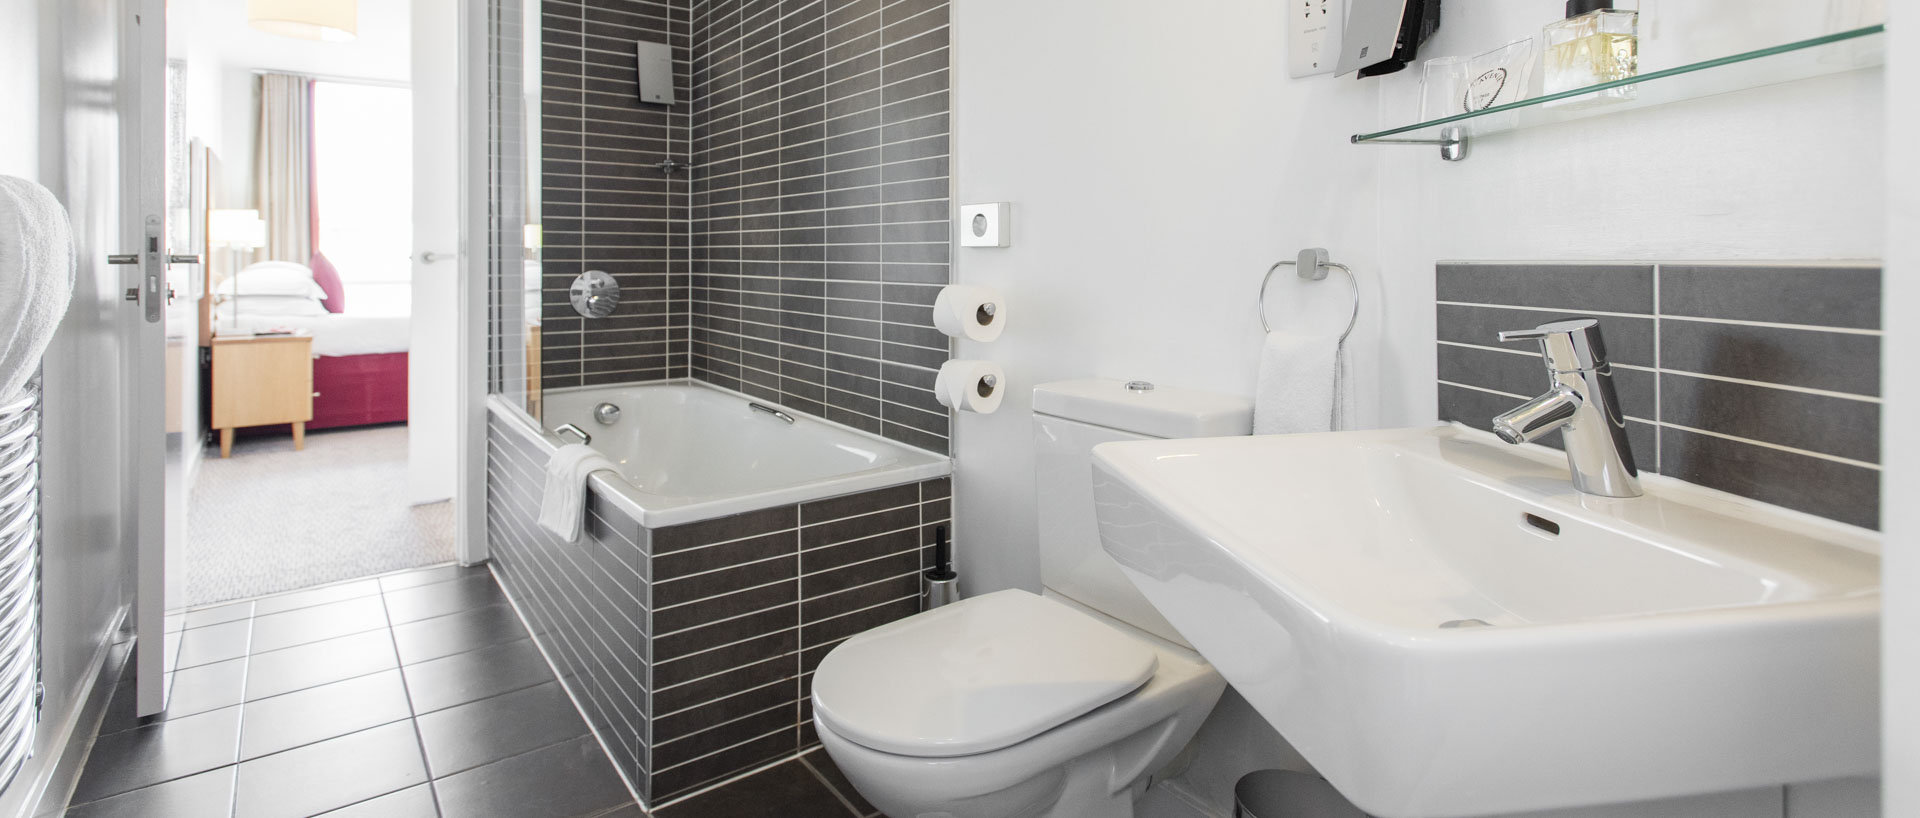 PREMIER SUITES Liverpool two bedroom bathroom